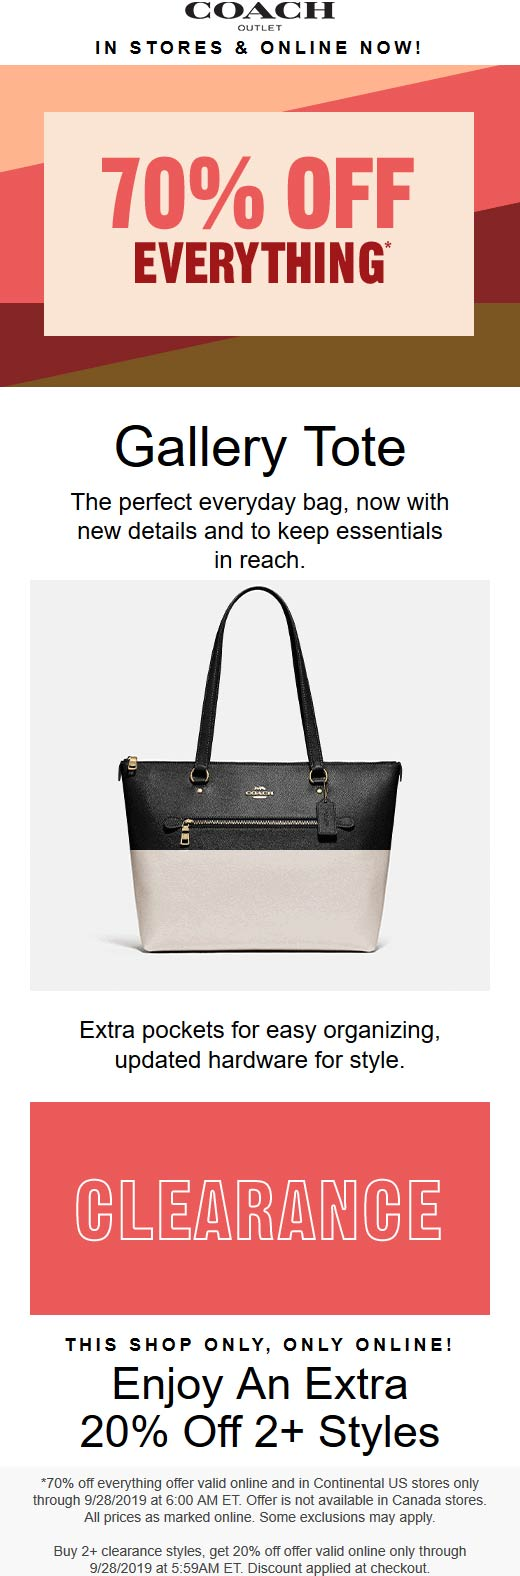 Coach Outlet Coupon January 2020 70-90% off at Coach Outlet, ditto online